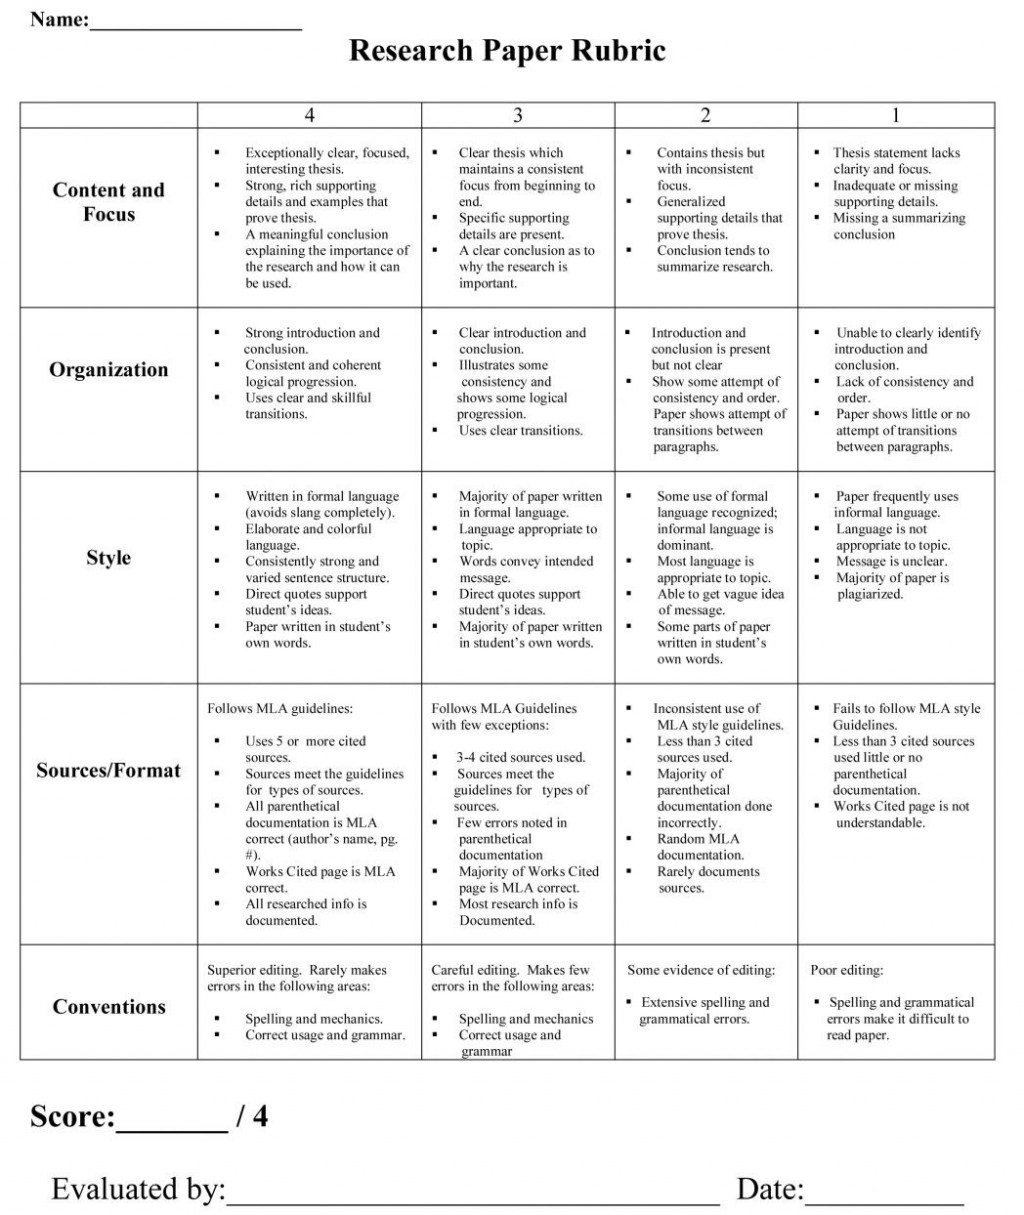 005 Research Paper Rubrics High School Rubric Unique Written Papers Line Free Assignment Help Uk Buy College Ess Beautiful Apa Mla Pdf Large